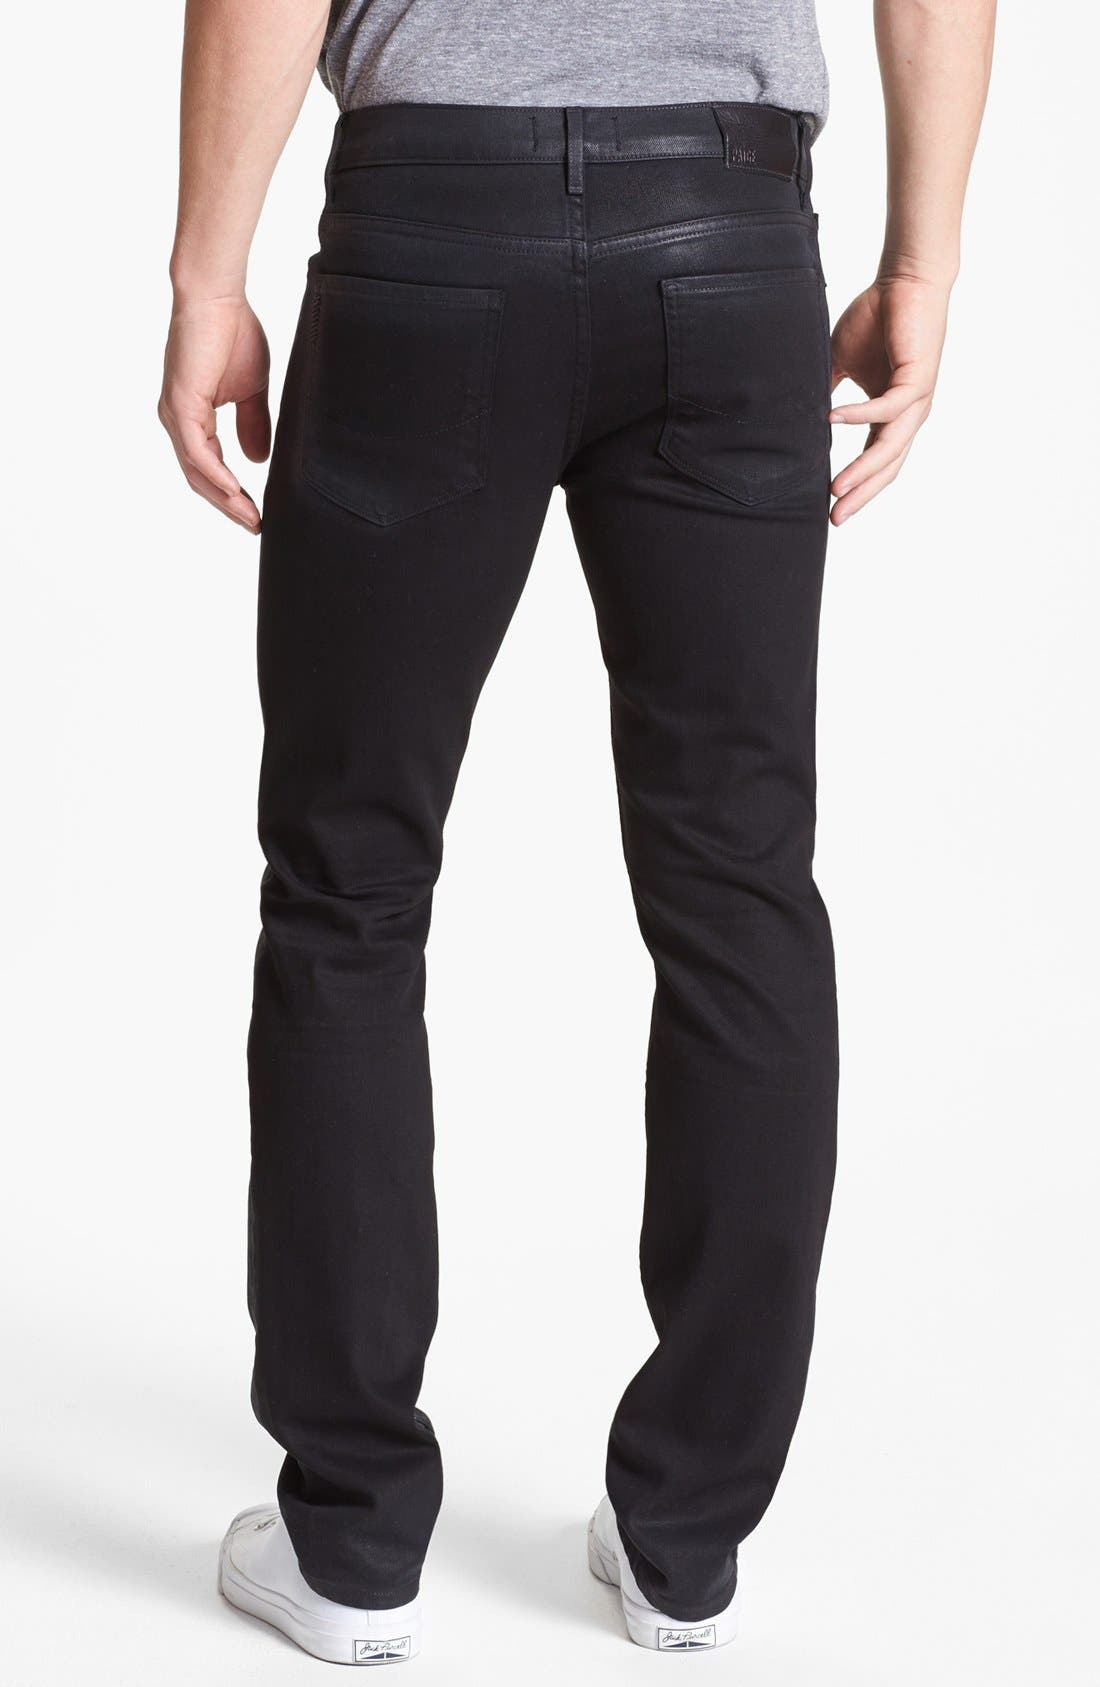 Alternate Image 1 Selected - PAIGE 'Federal' Coated Slim Fit Jeans (Oil Slick)